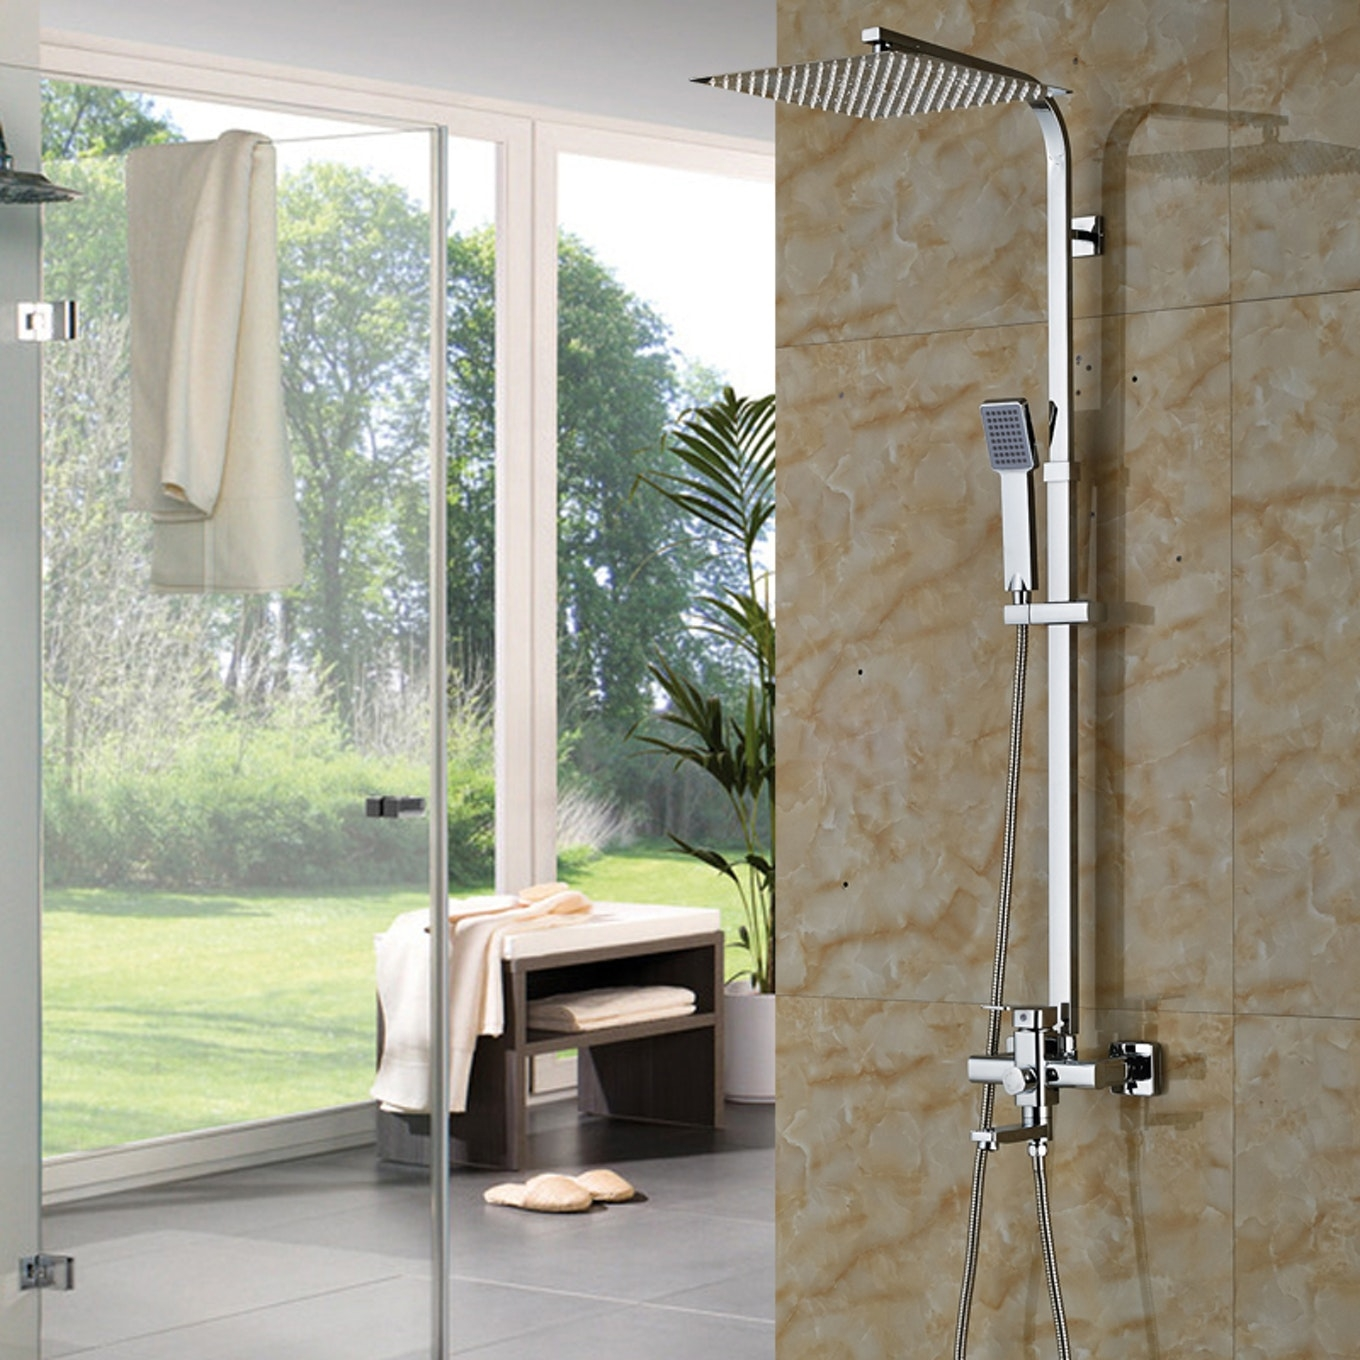 Ideas, top rated delta shower faucets top rated delta shower faucets emejing shower and sink faucet sets gallery 3d house designs 1360 x 1360  .